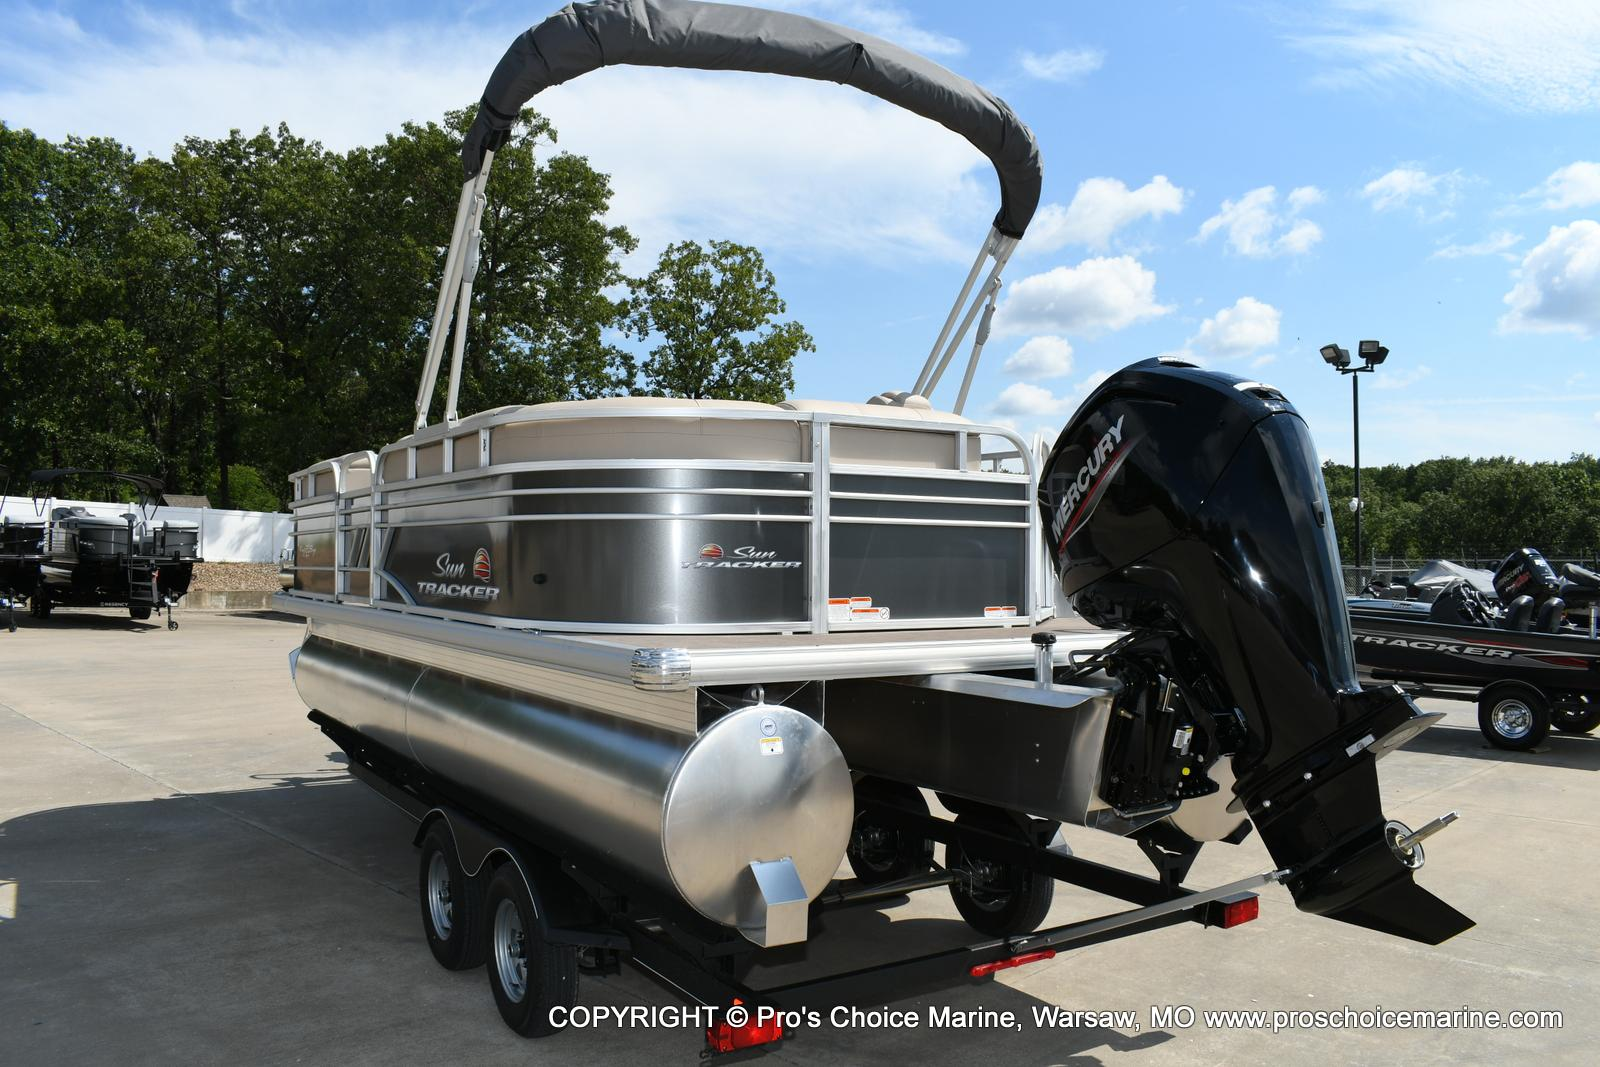 2020 Sun Tracker boat for sale, model of the boat is Party Barge 20 DLX & Image # 49 of 50